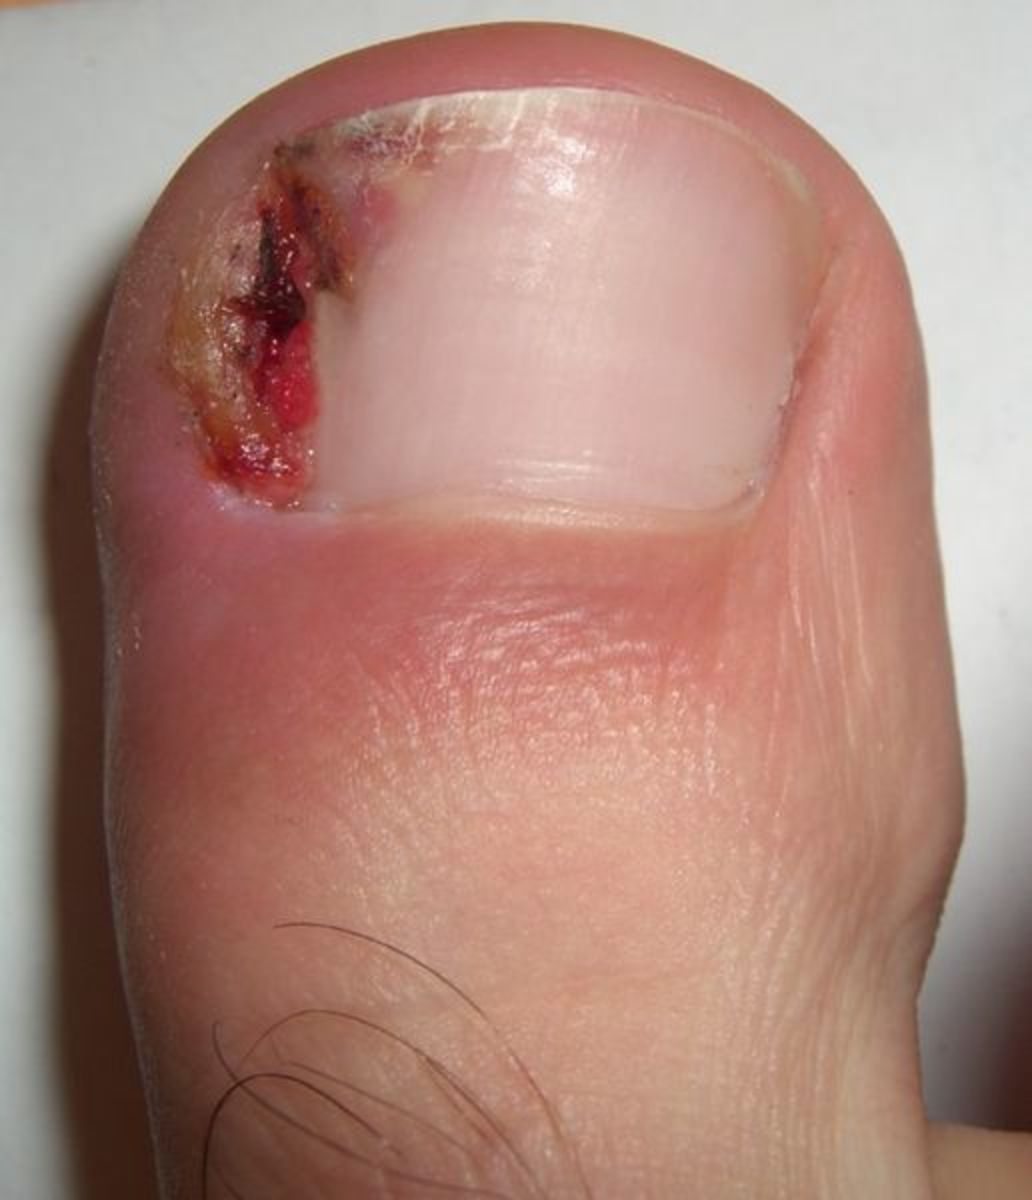 Bloody ingrown toenail